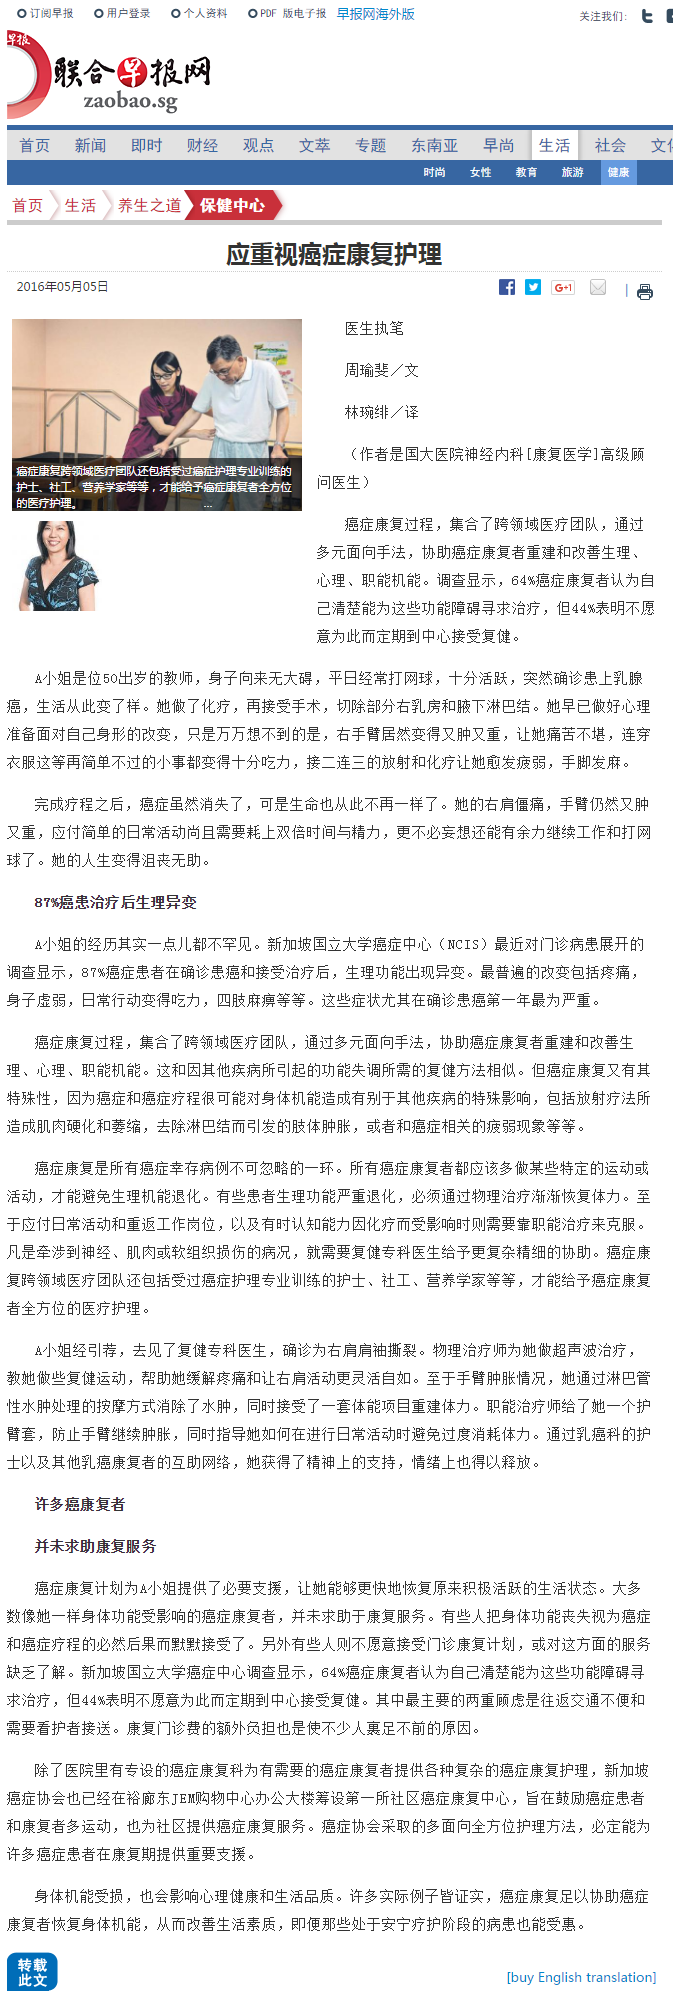 online article 05 05 2016 zaobao.png